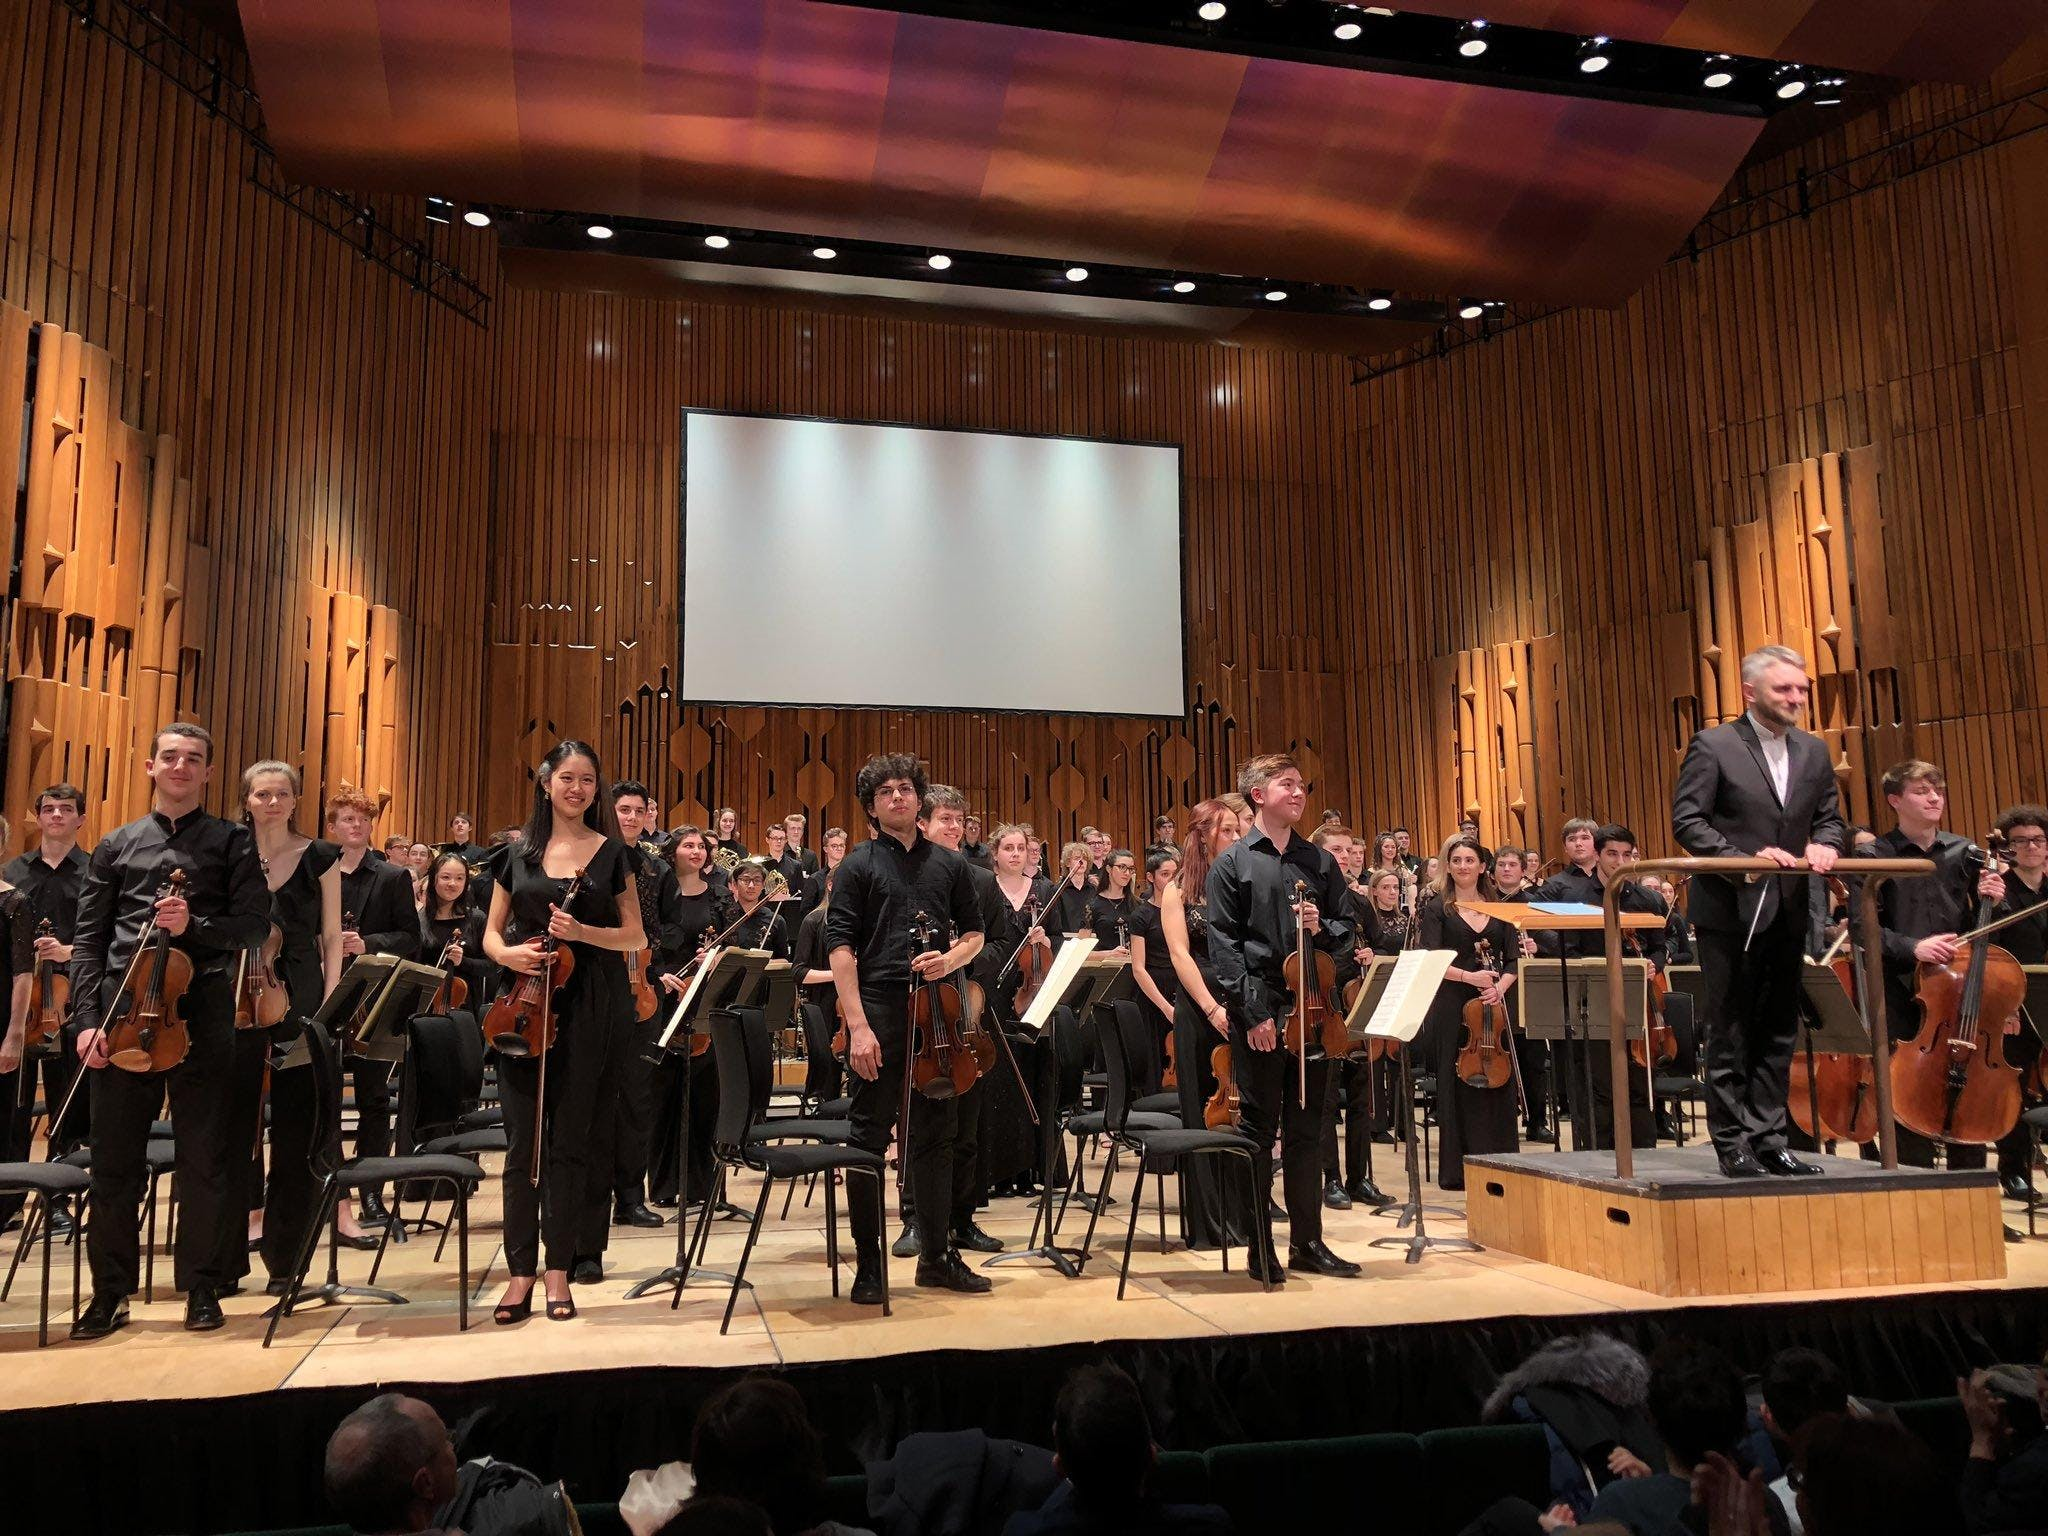 National Youth Orchestra Fundraising Recital